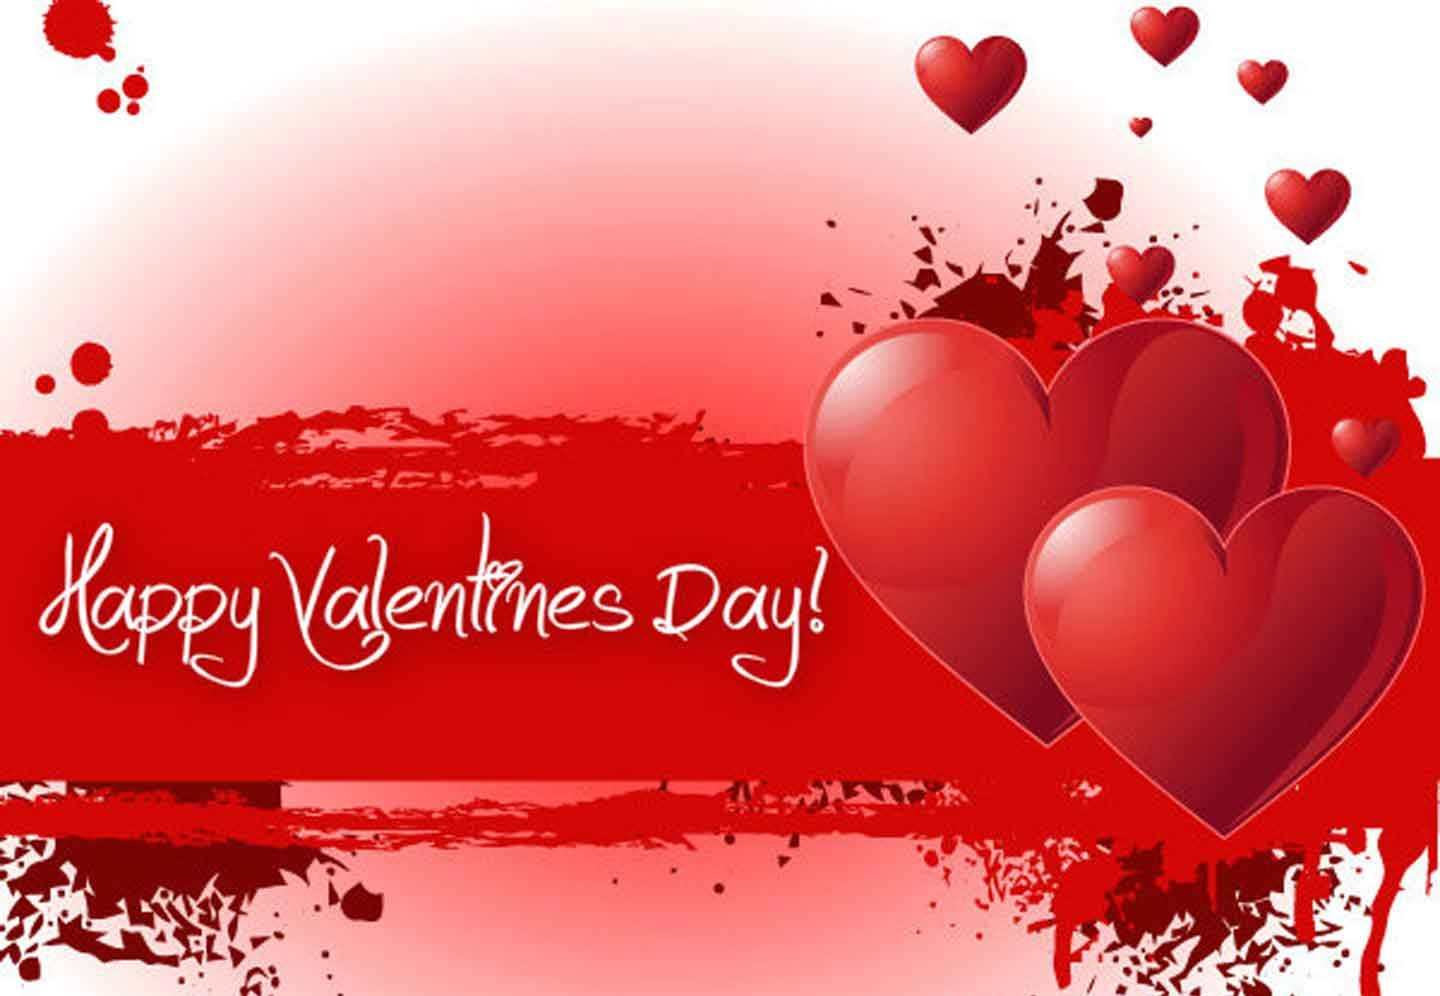 Buddy leader valentines day traditionally it is a day to tell someone that you love them people often send each other cards on valentines day sometimes anonymously kristyandbryce Choice Image